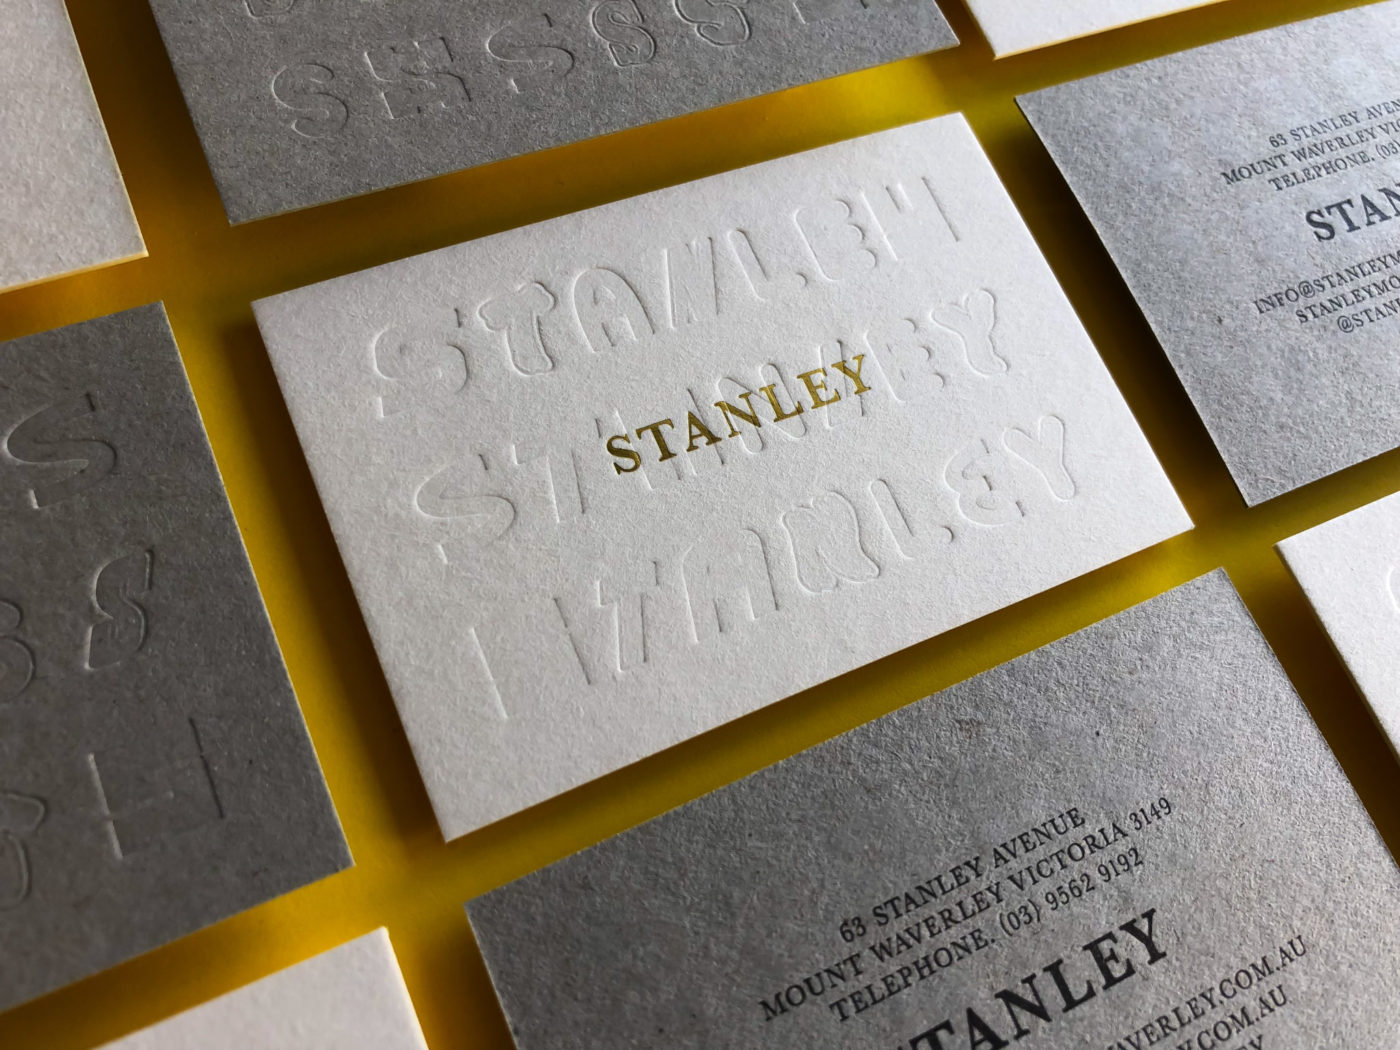 Gold Foil Letterpress Business Cards for Stanley on Beer Matt Board 3